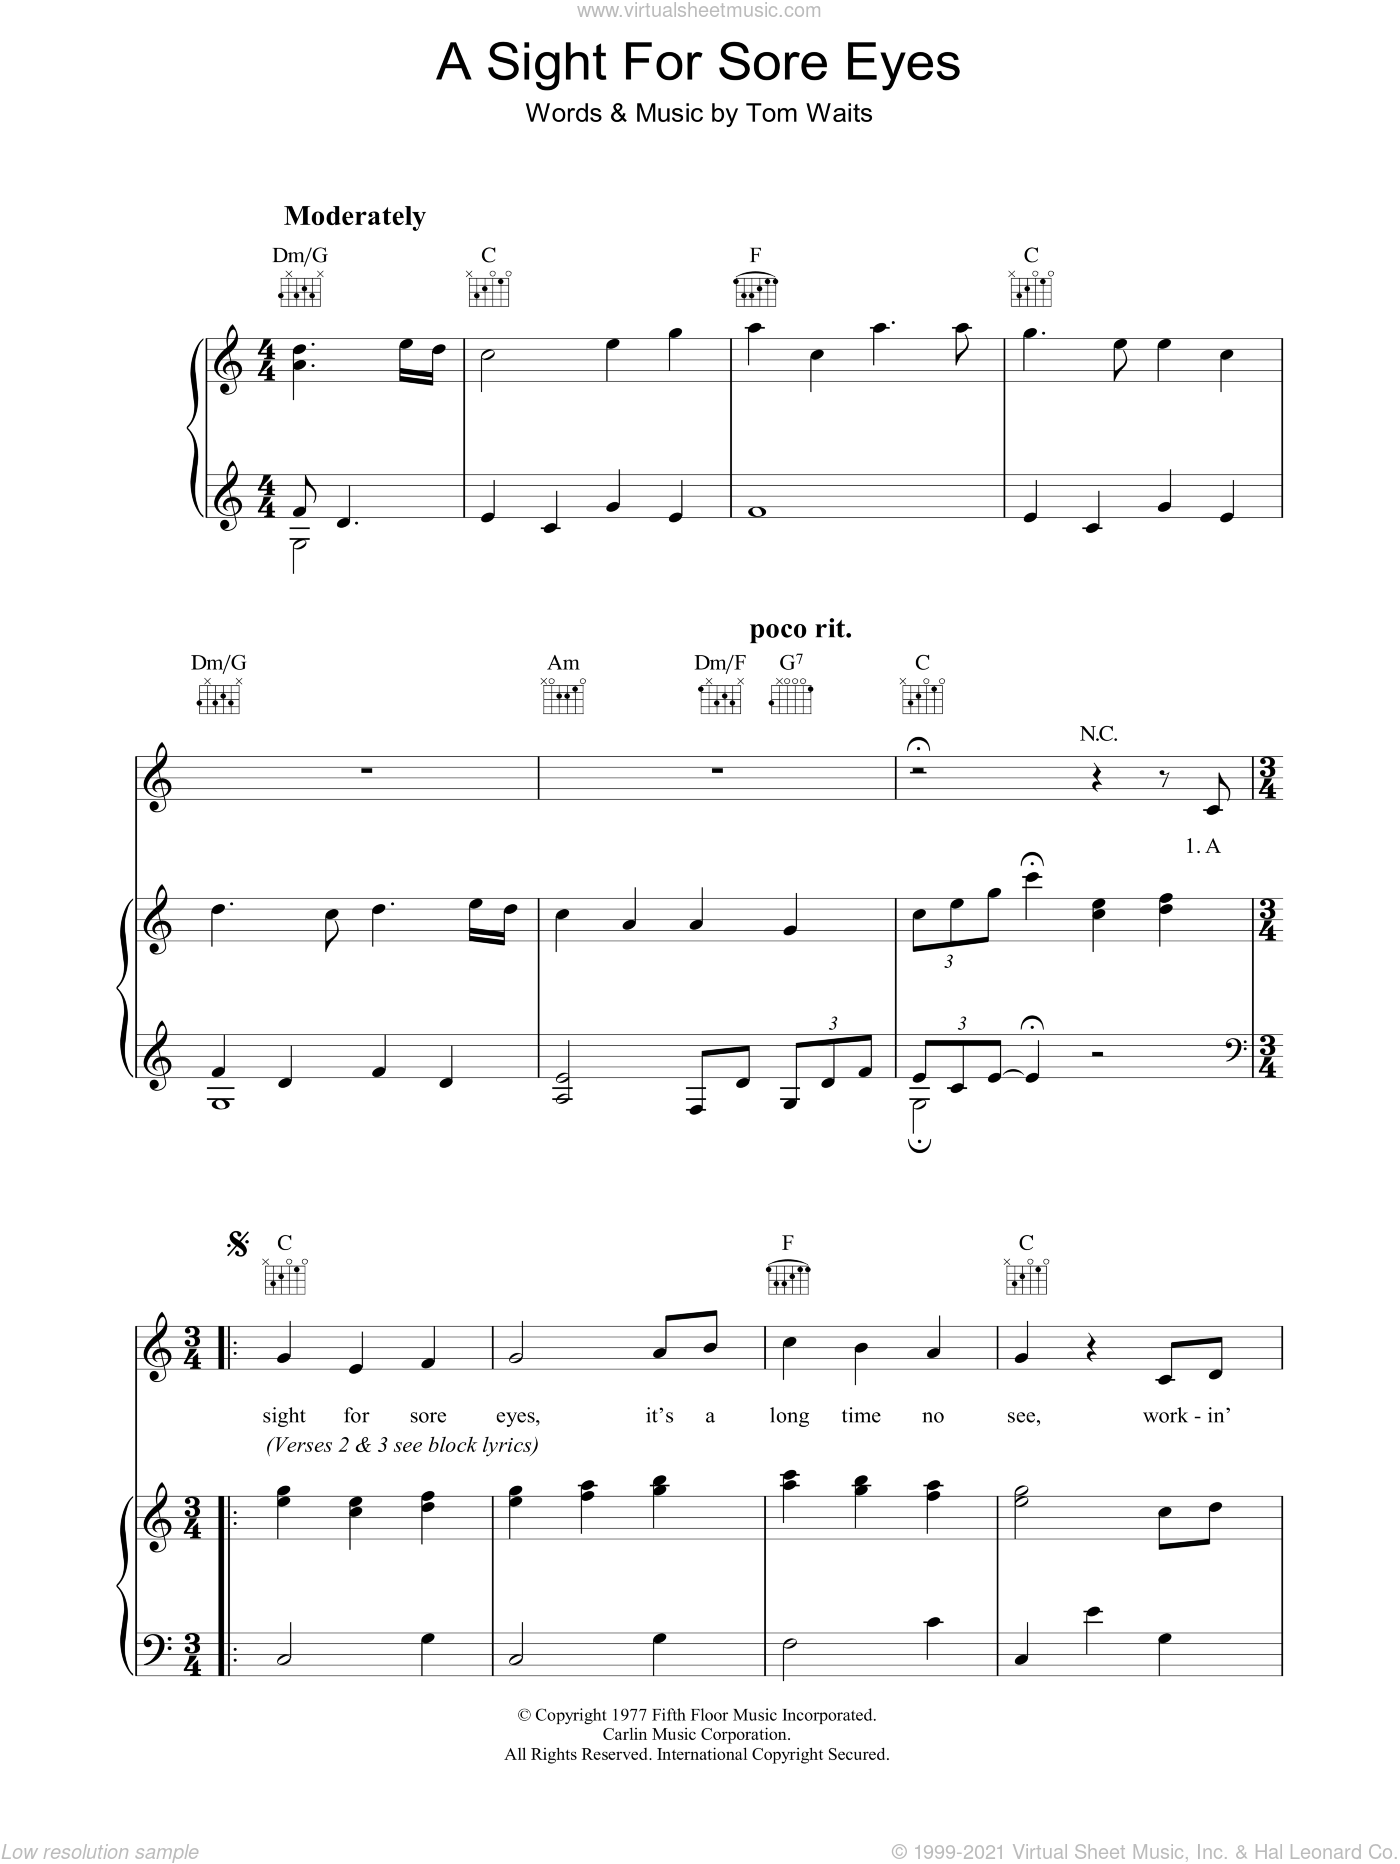 A Sight For Sore Eyes sheet music for voice, piano or guitar by Tom Waits, intermediate skill level